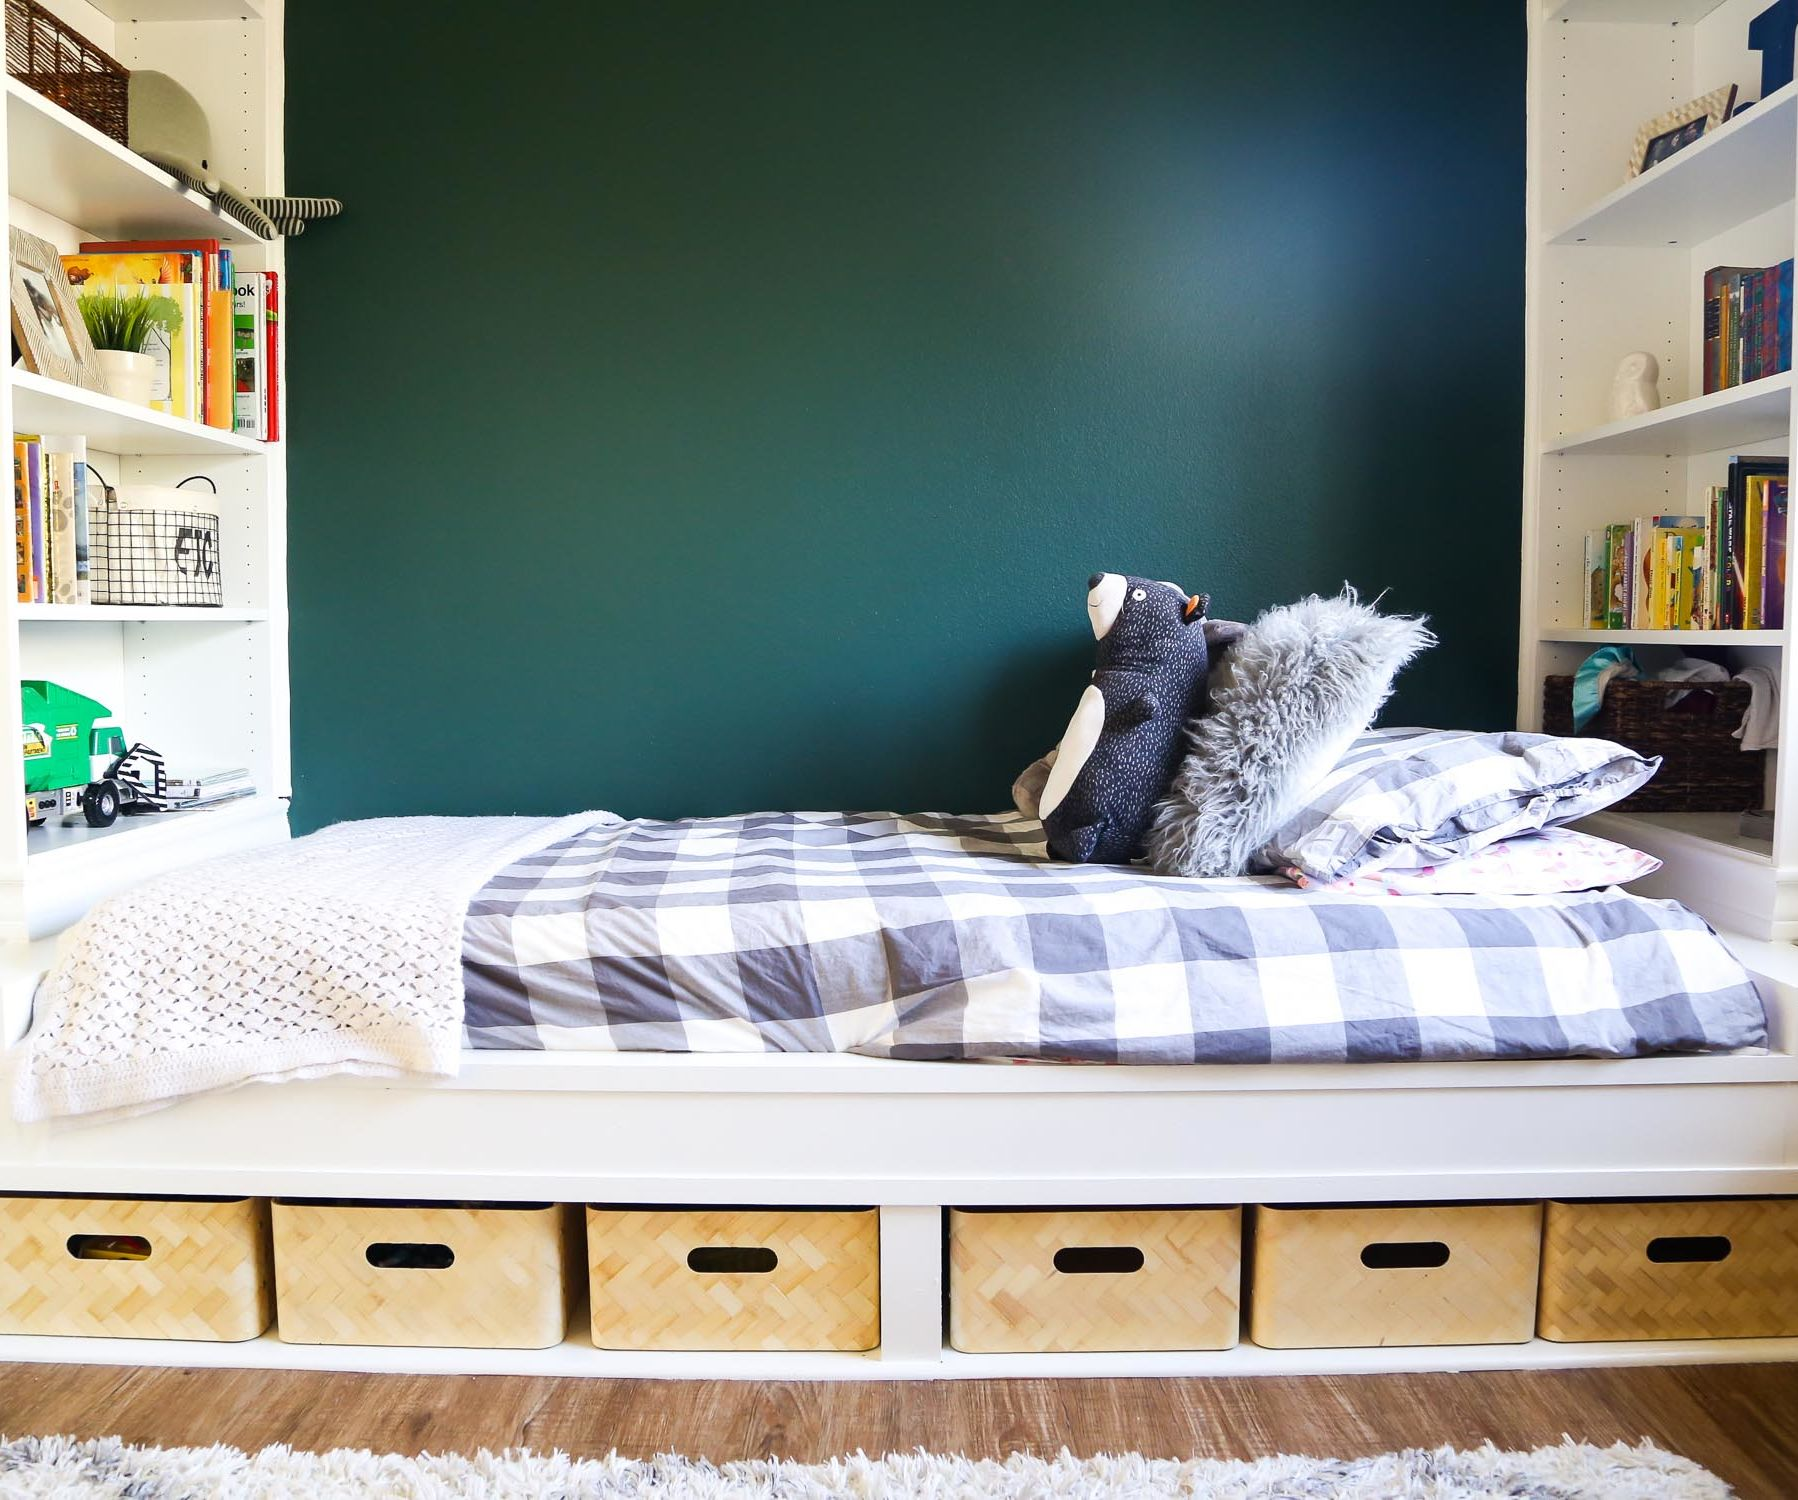 Diy Storage Daybed With Build In Shelves 7 Steps With Pictures Instructables